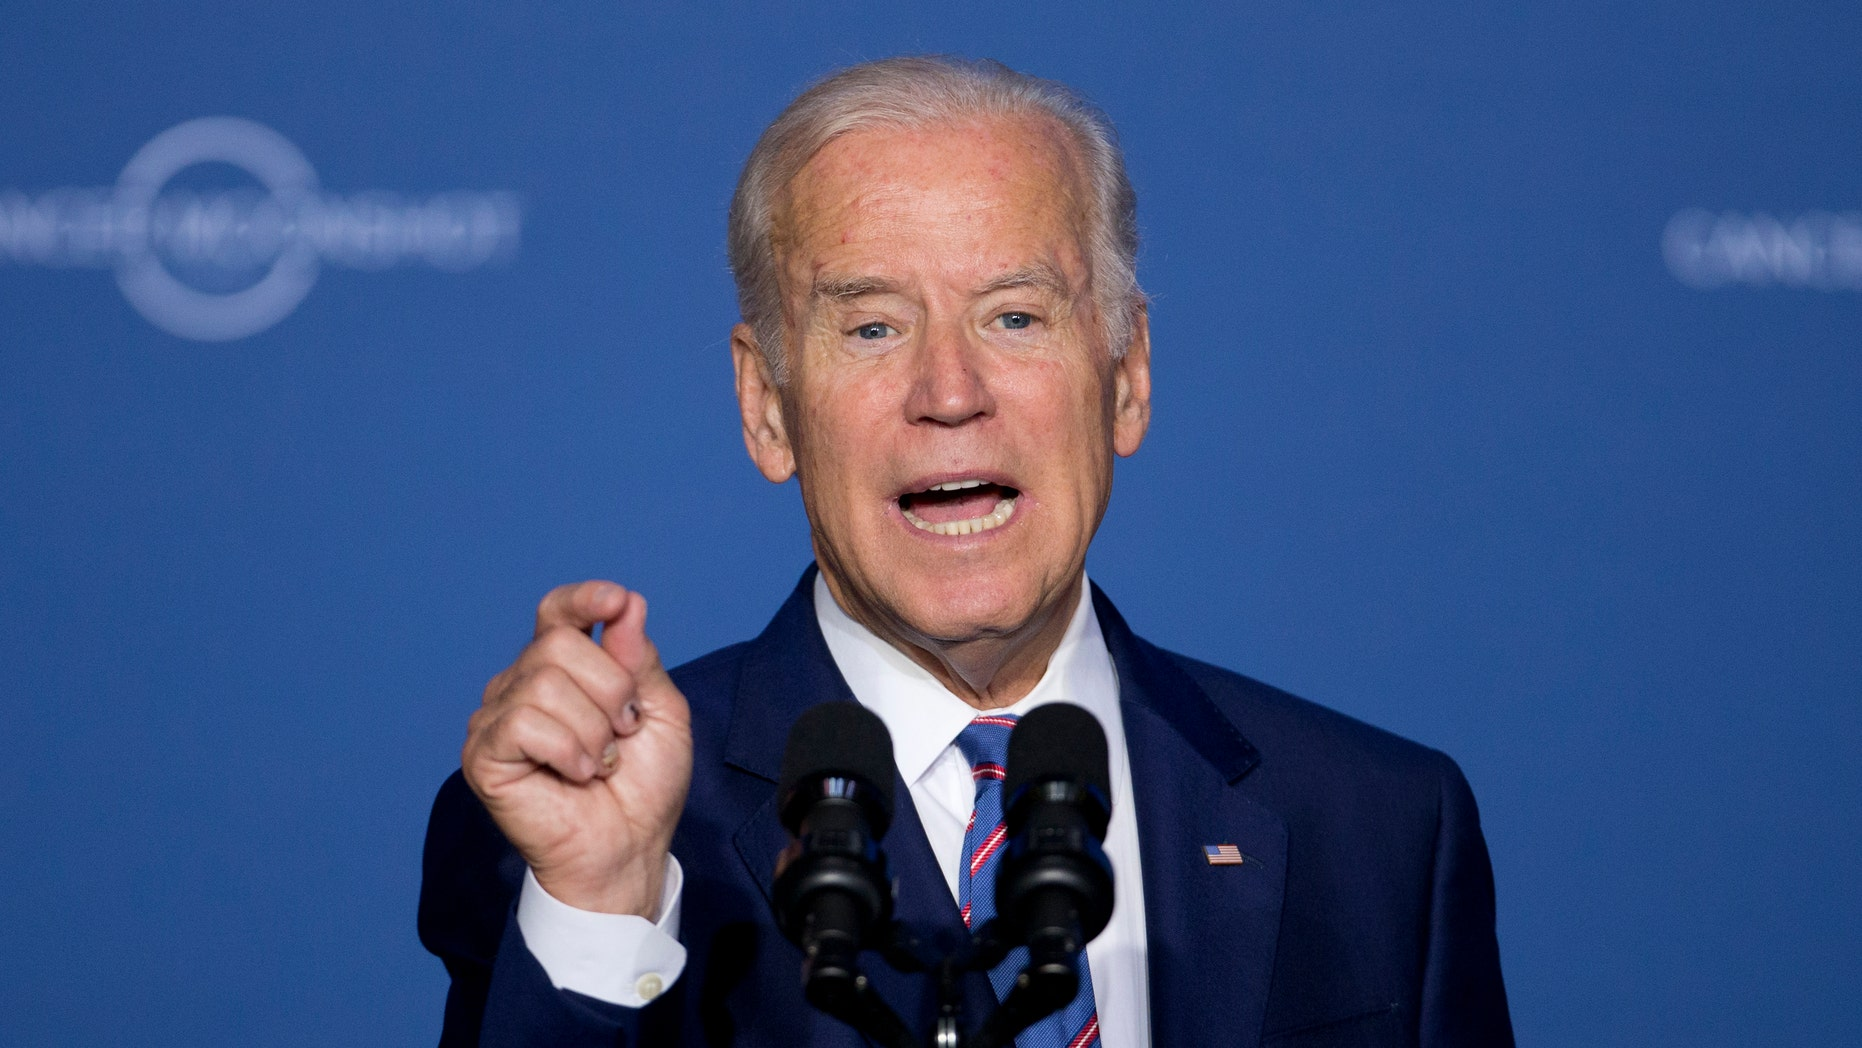 Vice President Joe Biden speaks at the Cancer Moonshot Summit at Howard University in Washington, Wednesday, June 29, 2016. Biden is trying to bolster efforts to cure cancer at this summit focusing on research and innovative trials.